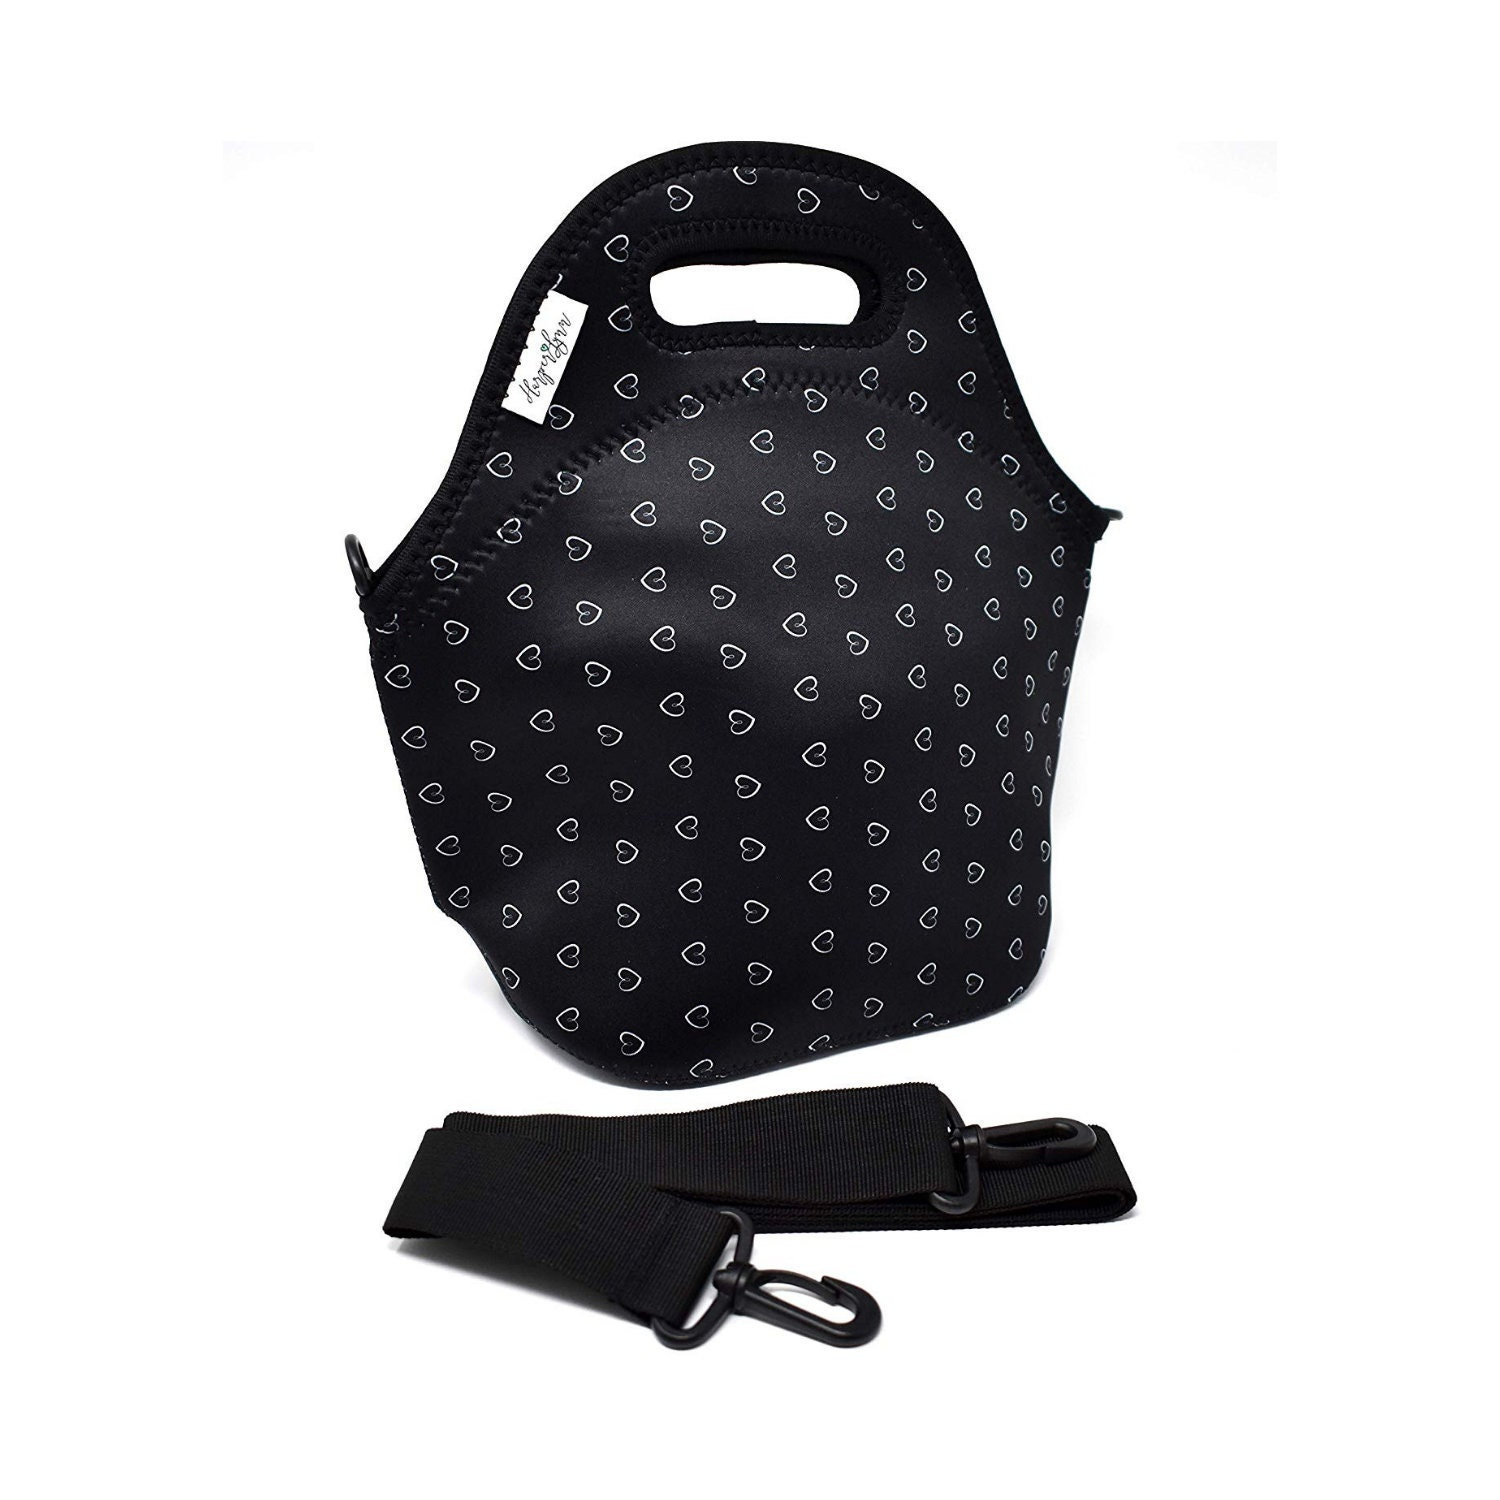 026b15bf9cae HarperLynn Insulated Neoprene Lunch Bag Tote with Shoulder Strap - Cute,  Lightweight Reusable with Zipper (Heart Print) - Perfect for Moms